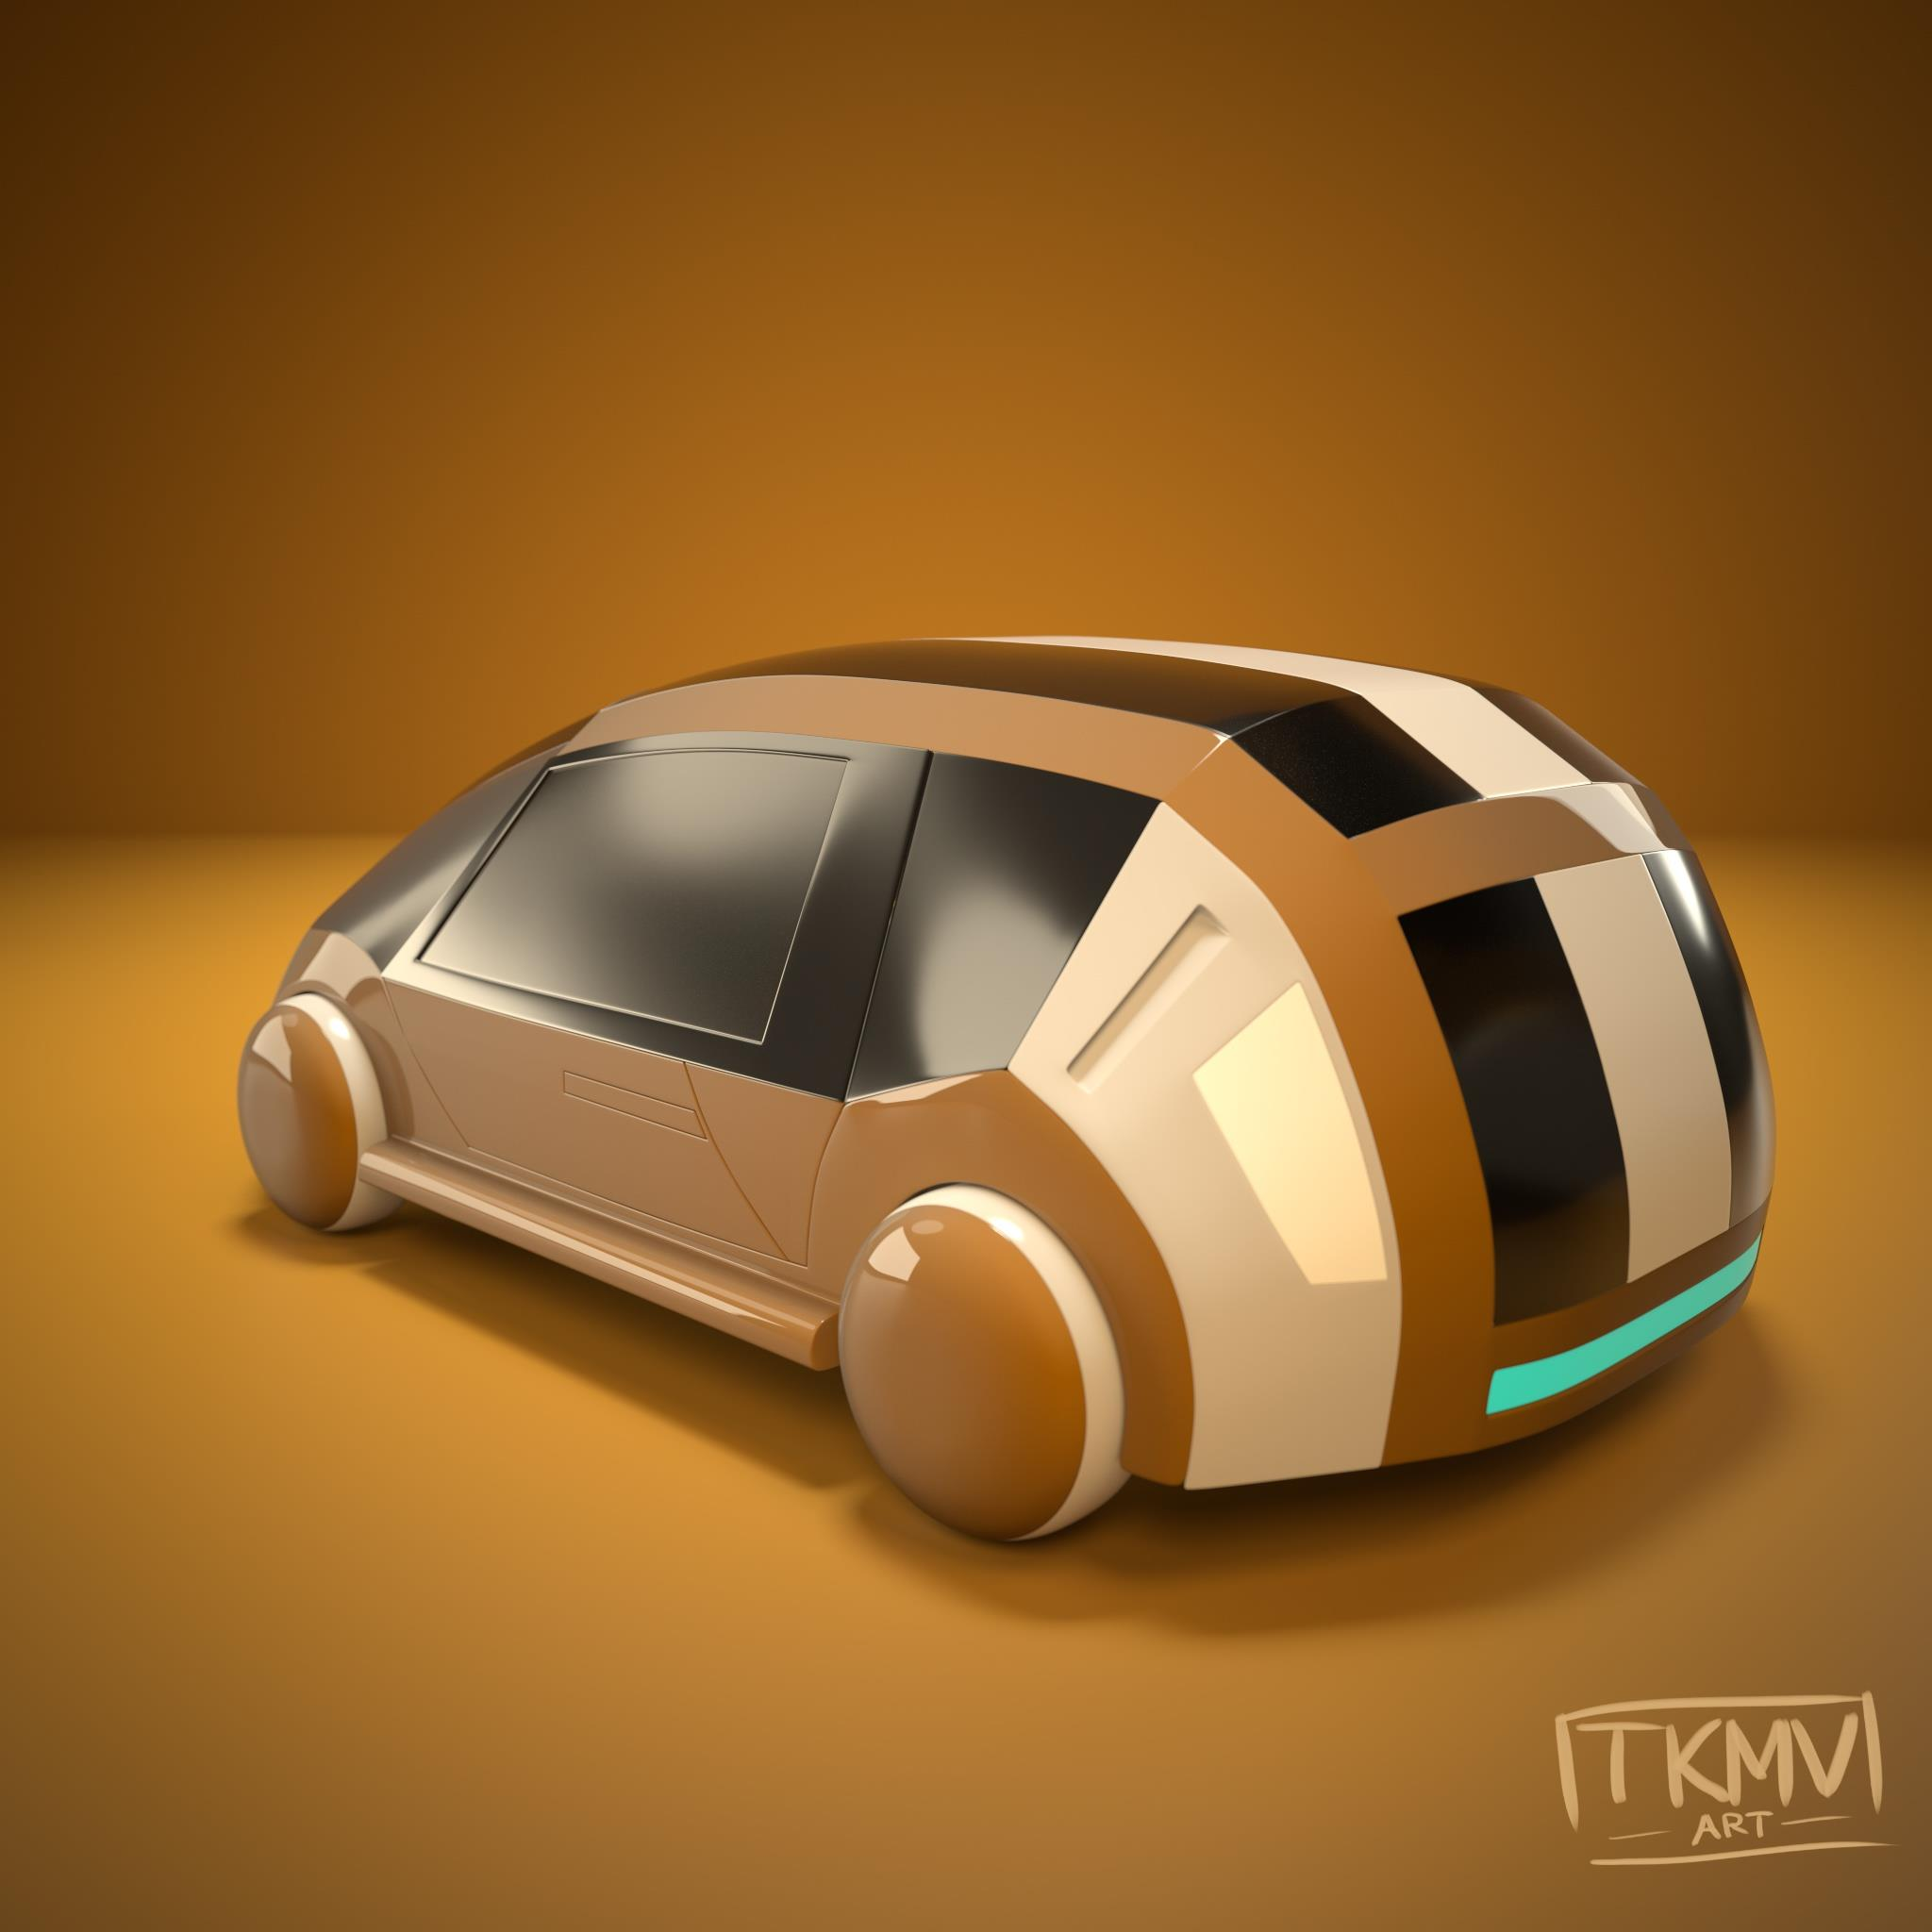 Future Car Design 01 Back